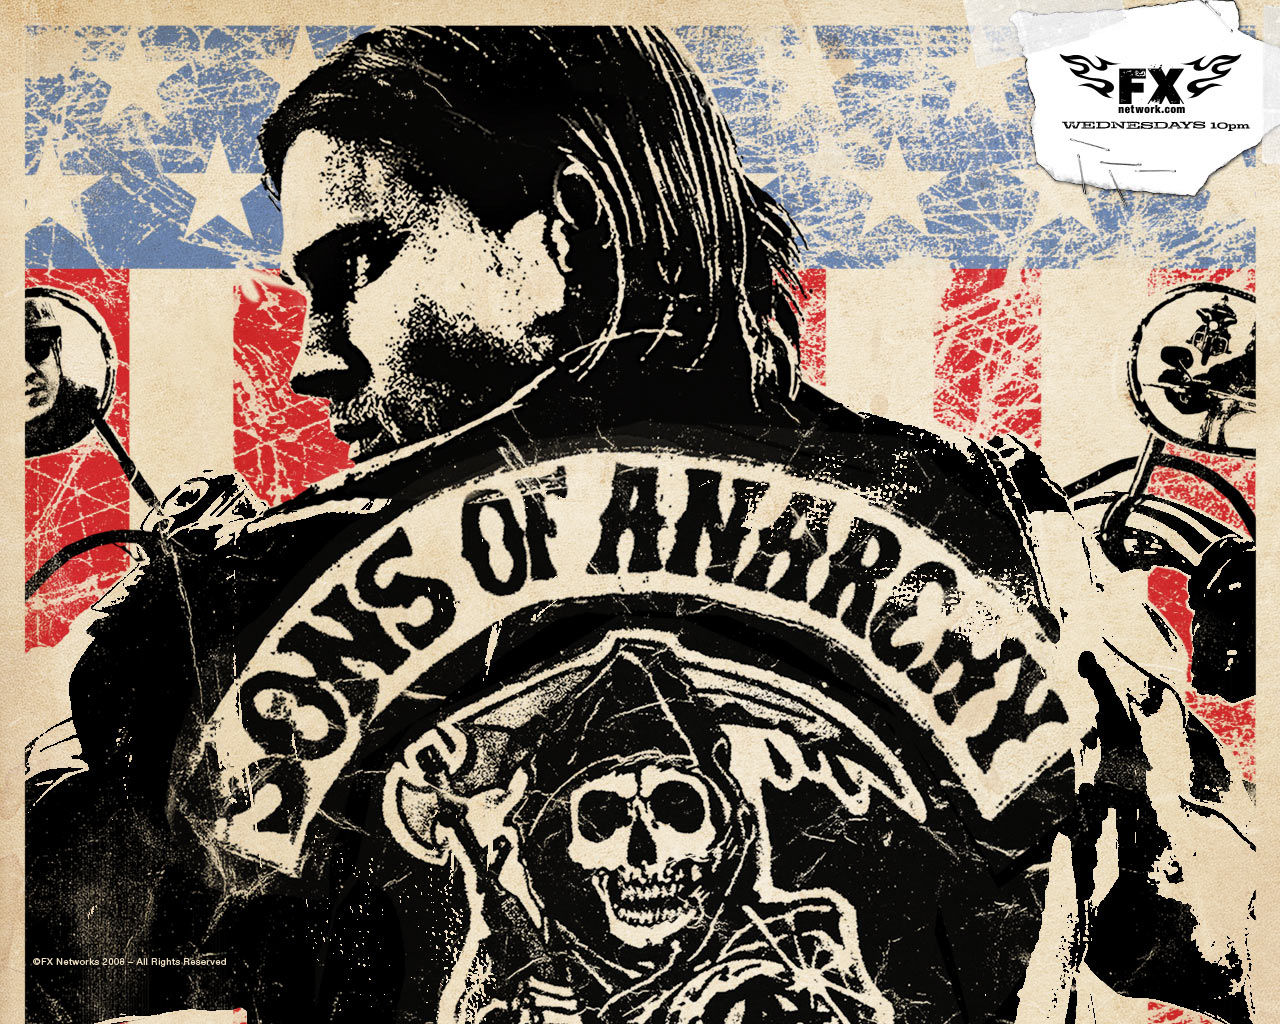 kurt-sutter-futuro-sons-of-anarchy